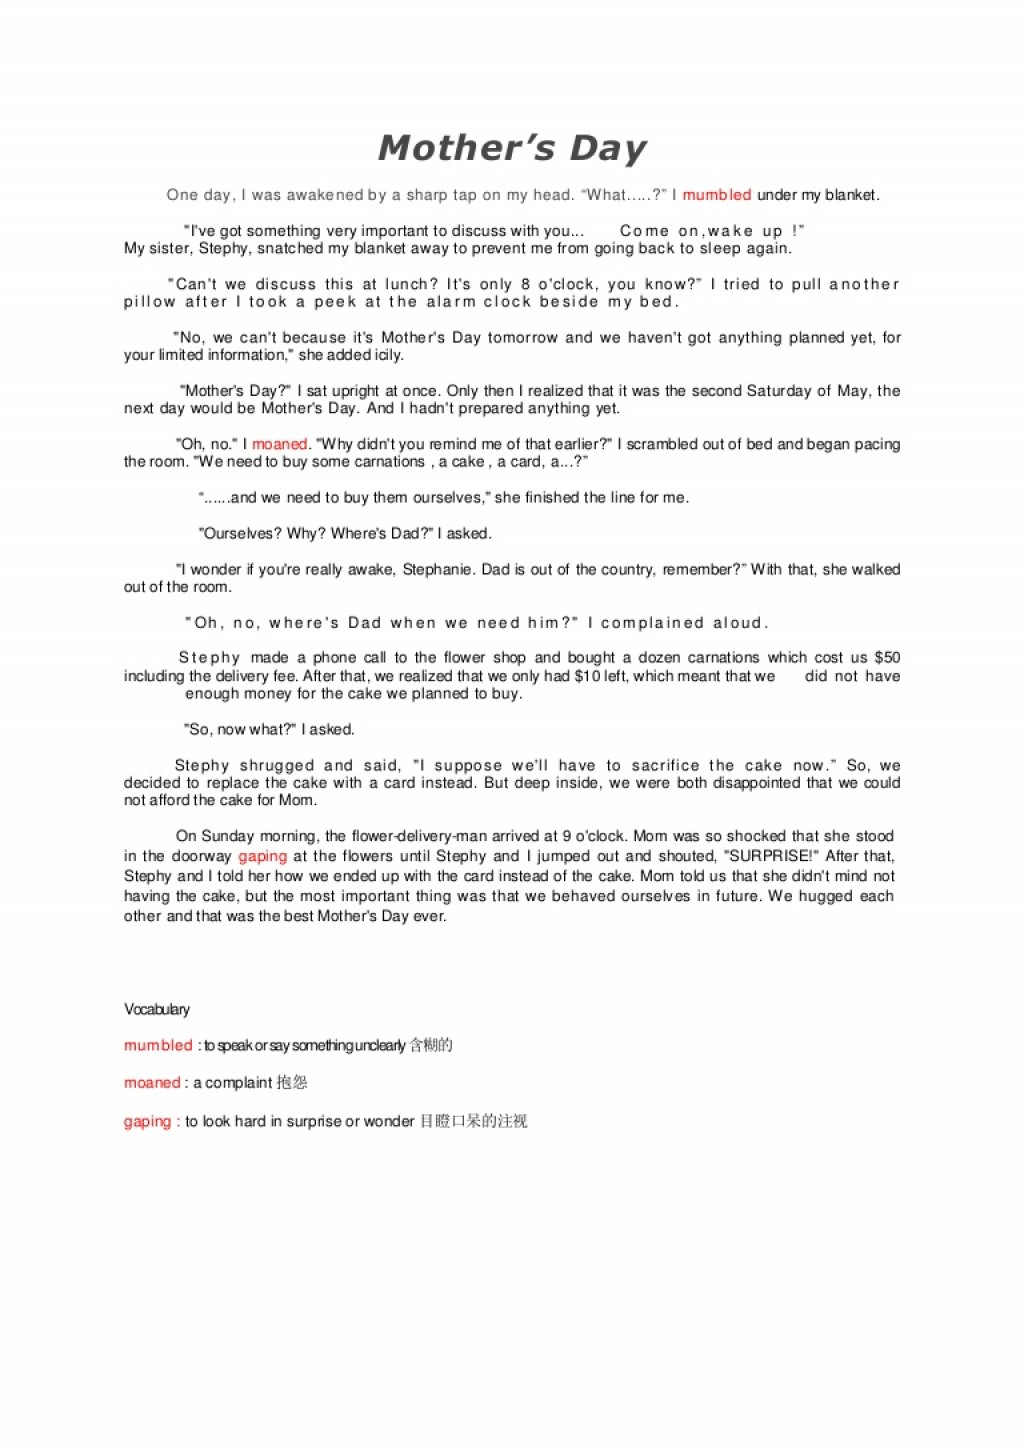 008 Essay My Mom Mothersday Phpapp02 Thumbnail Astounding On Mother In Hindi For Class 5 The Moment Of Success Narrative 1 Large